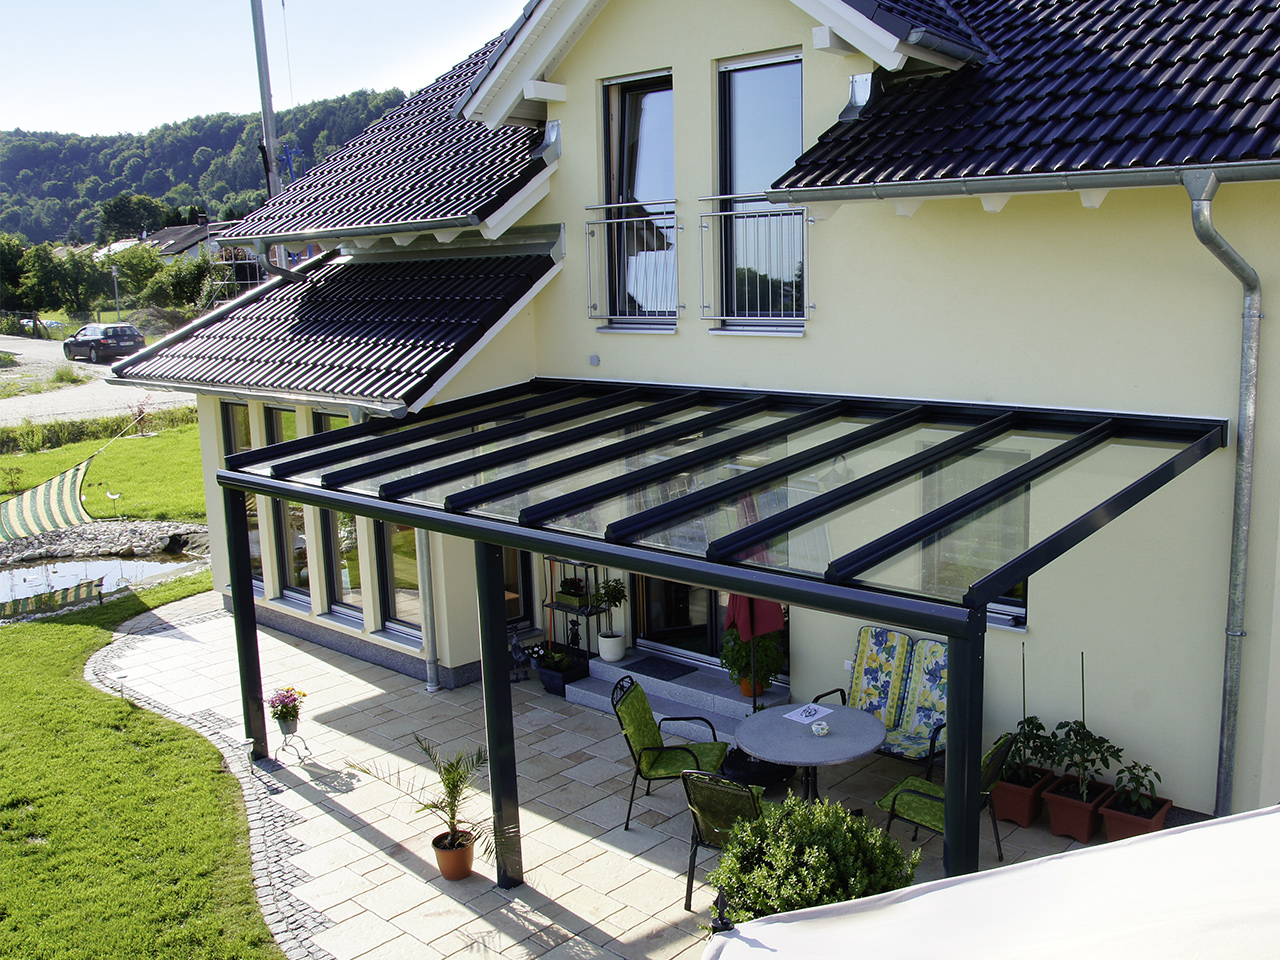 pergola vord cher sachs fenster mit herz. Black Bedroom Furniture Sets. Home Design Ideas